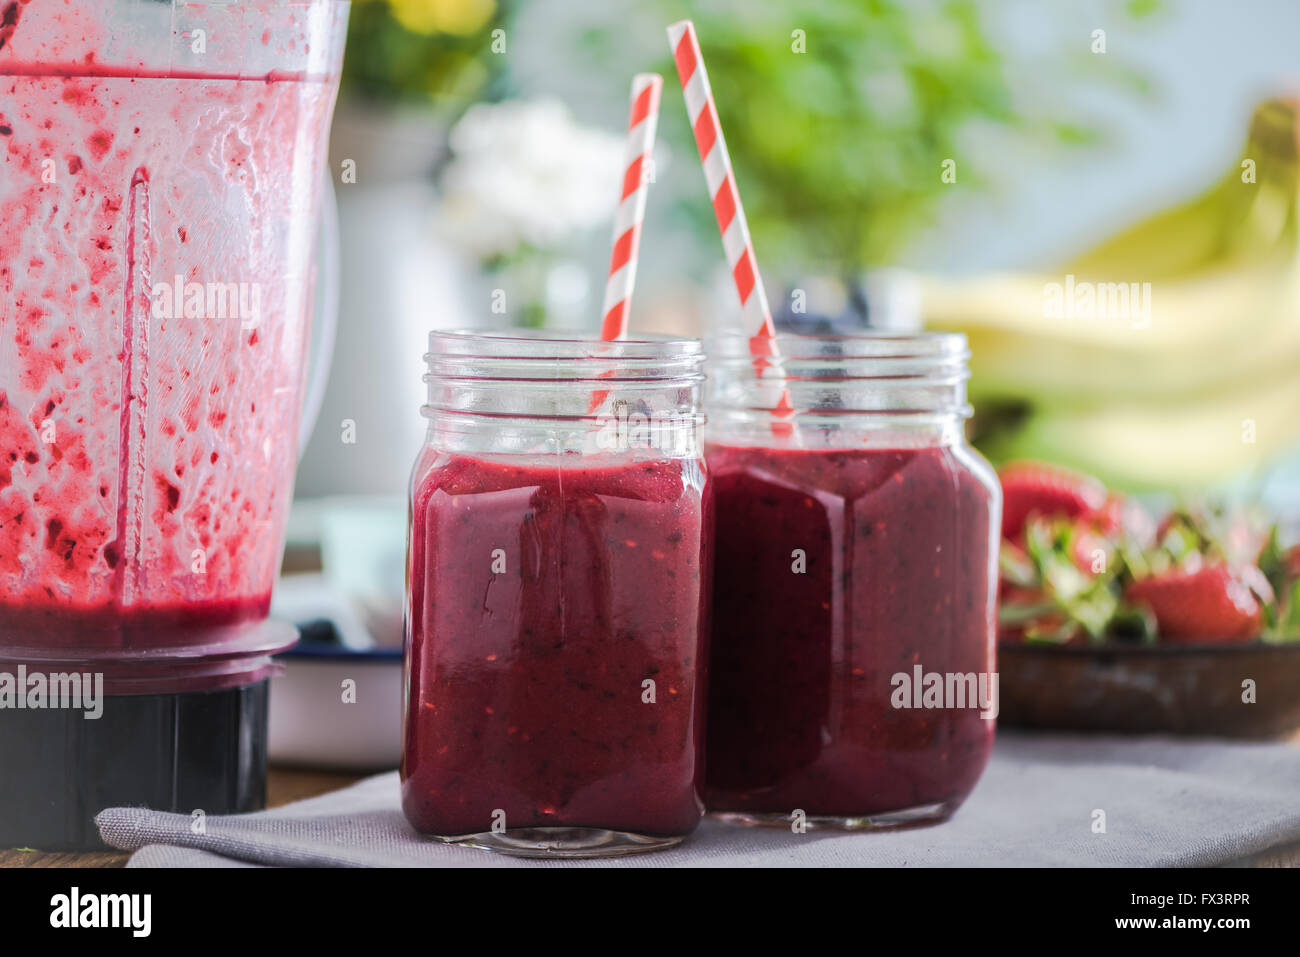 Berry smoothie on wooden table in sunny kitchen, negative space for text. - Stock Image